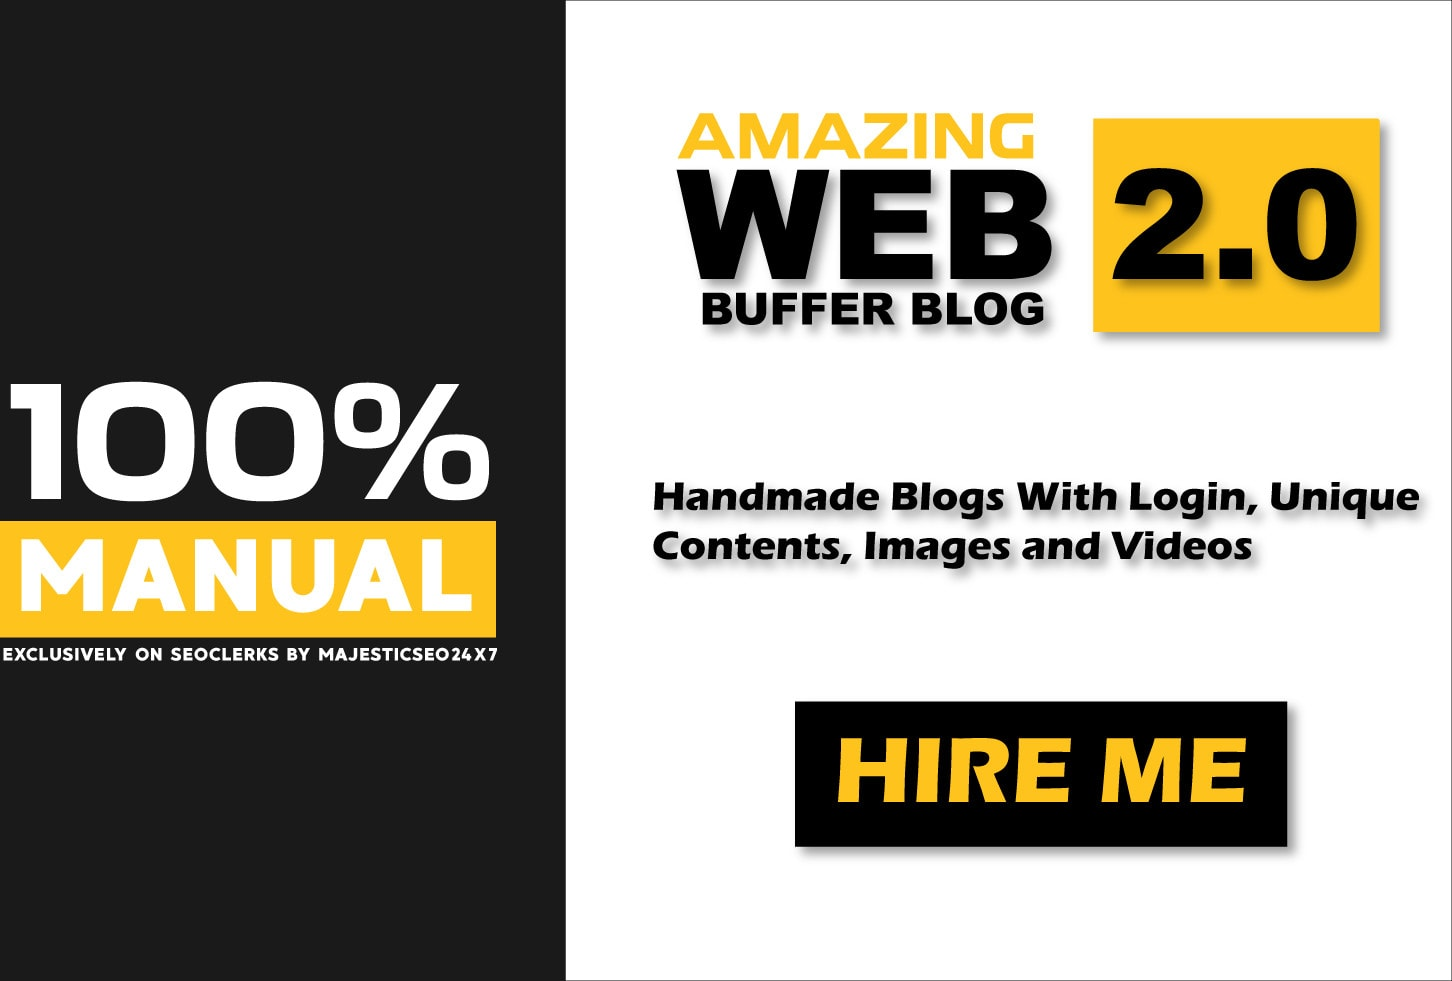 create 10 amazing web 2 0 blog properties with login details